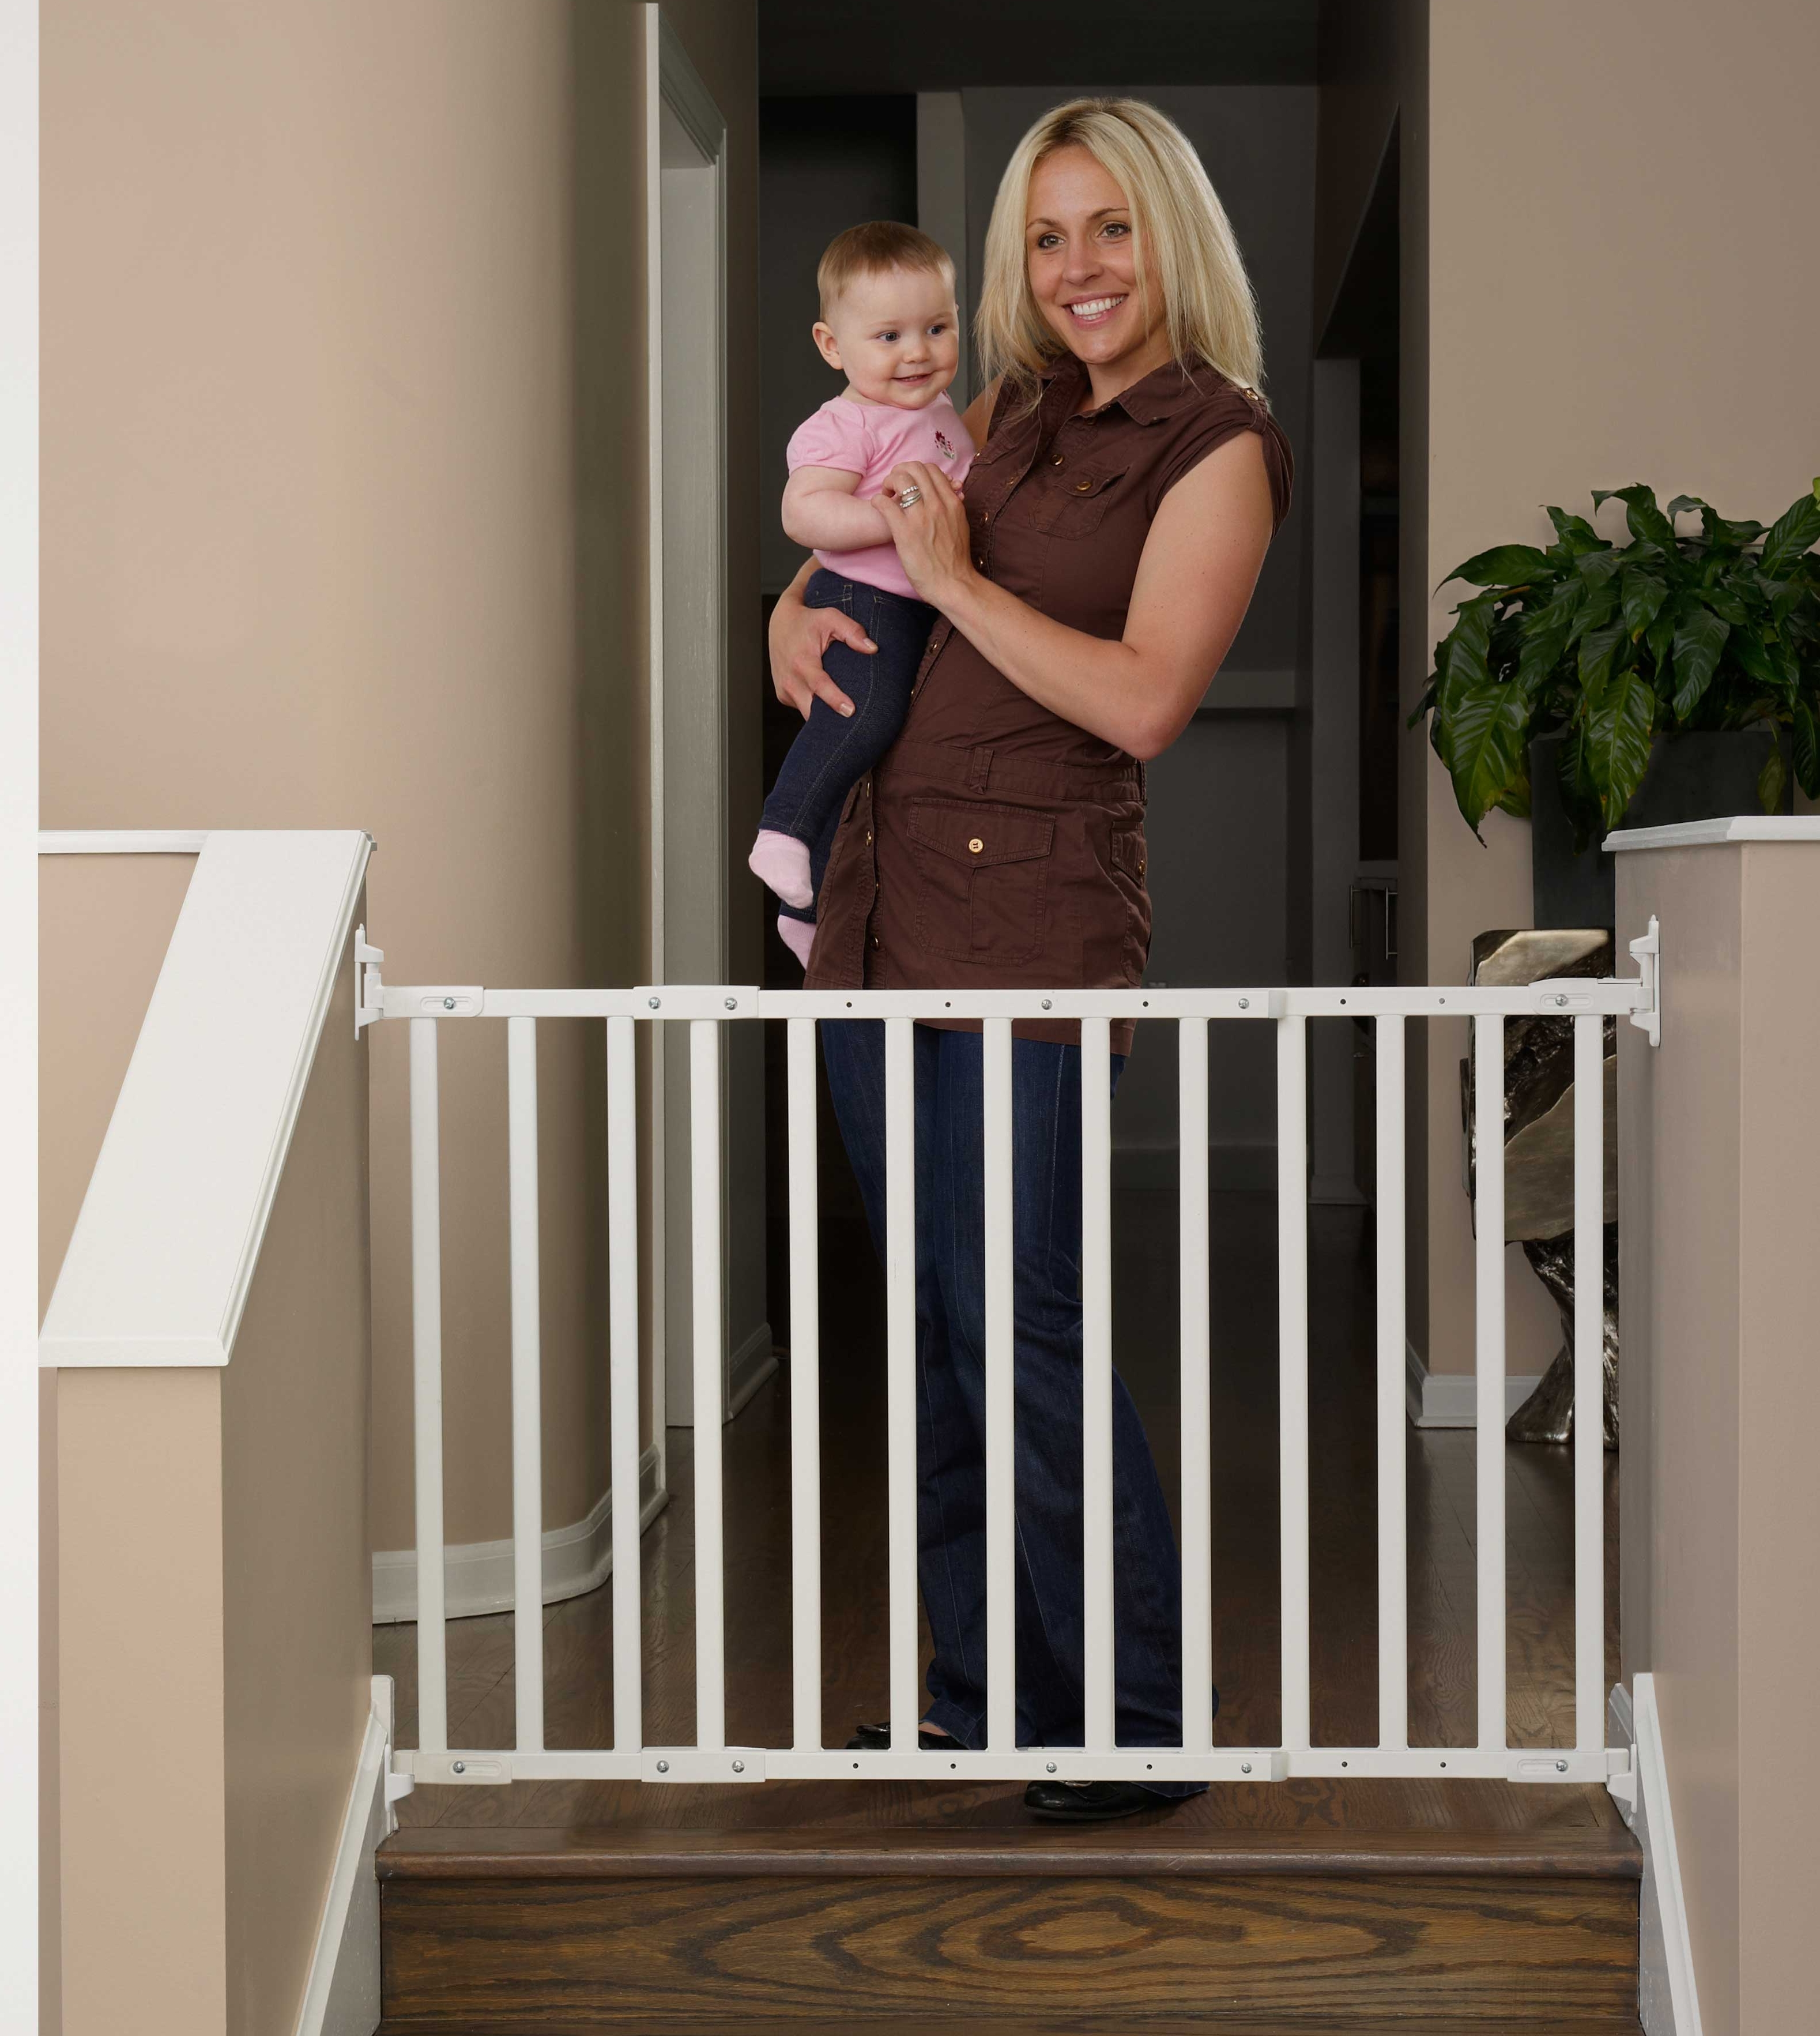 Kidco Angle Mount Safeway Select Safety Gate Select -White